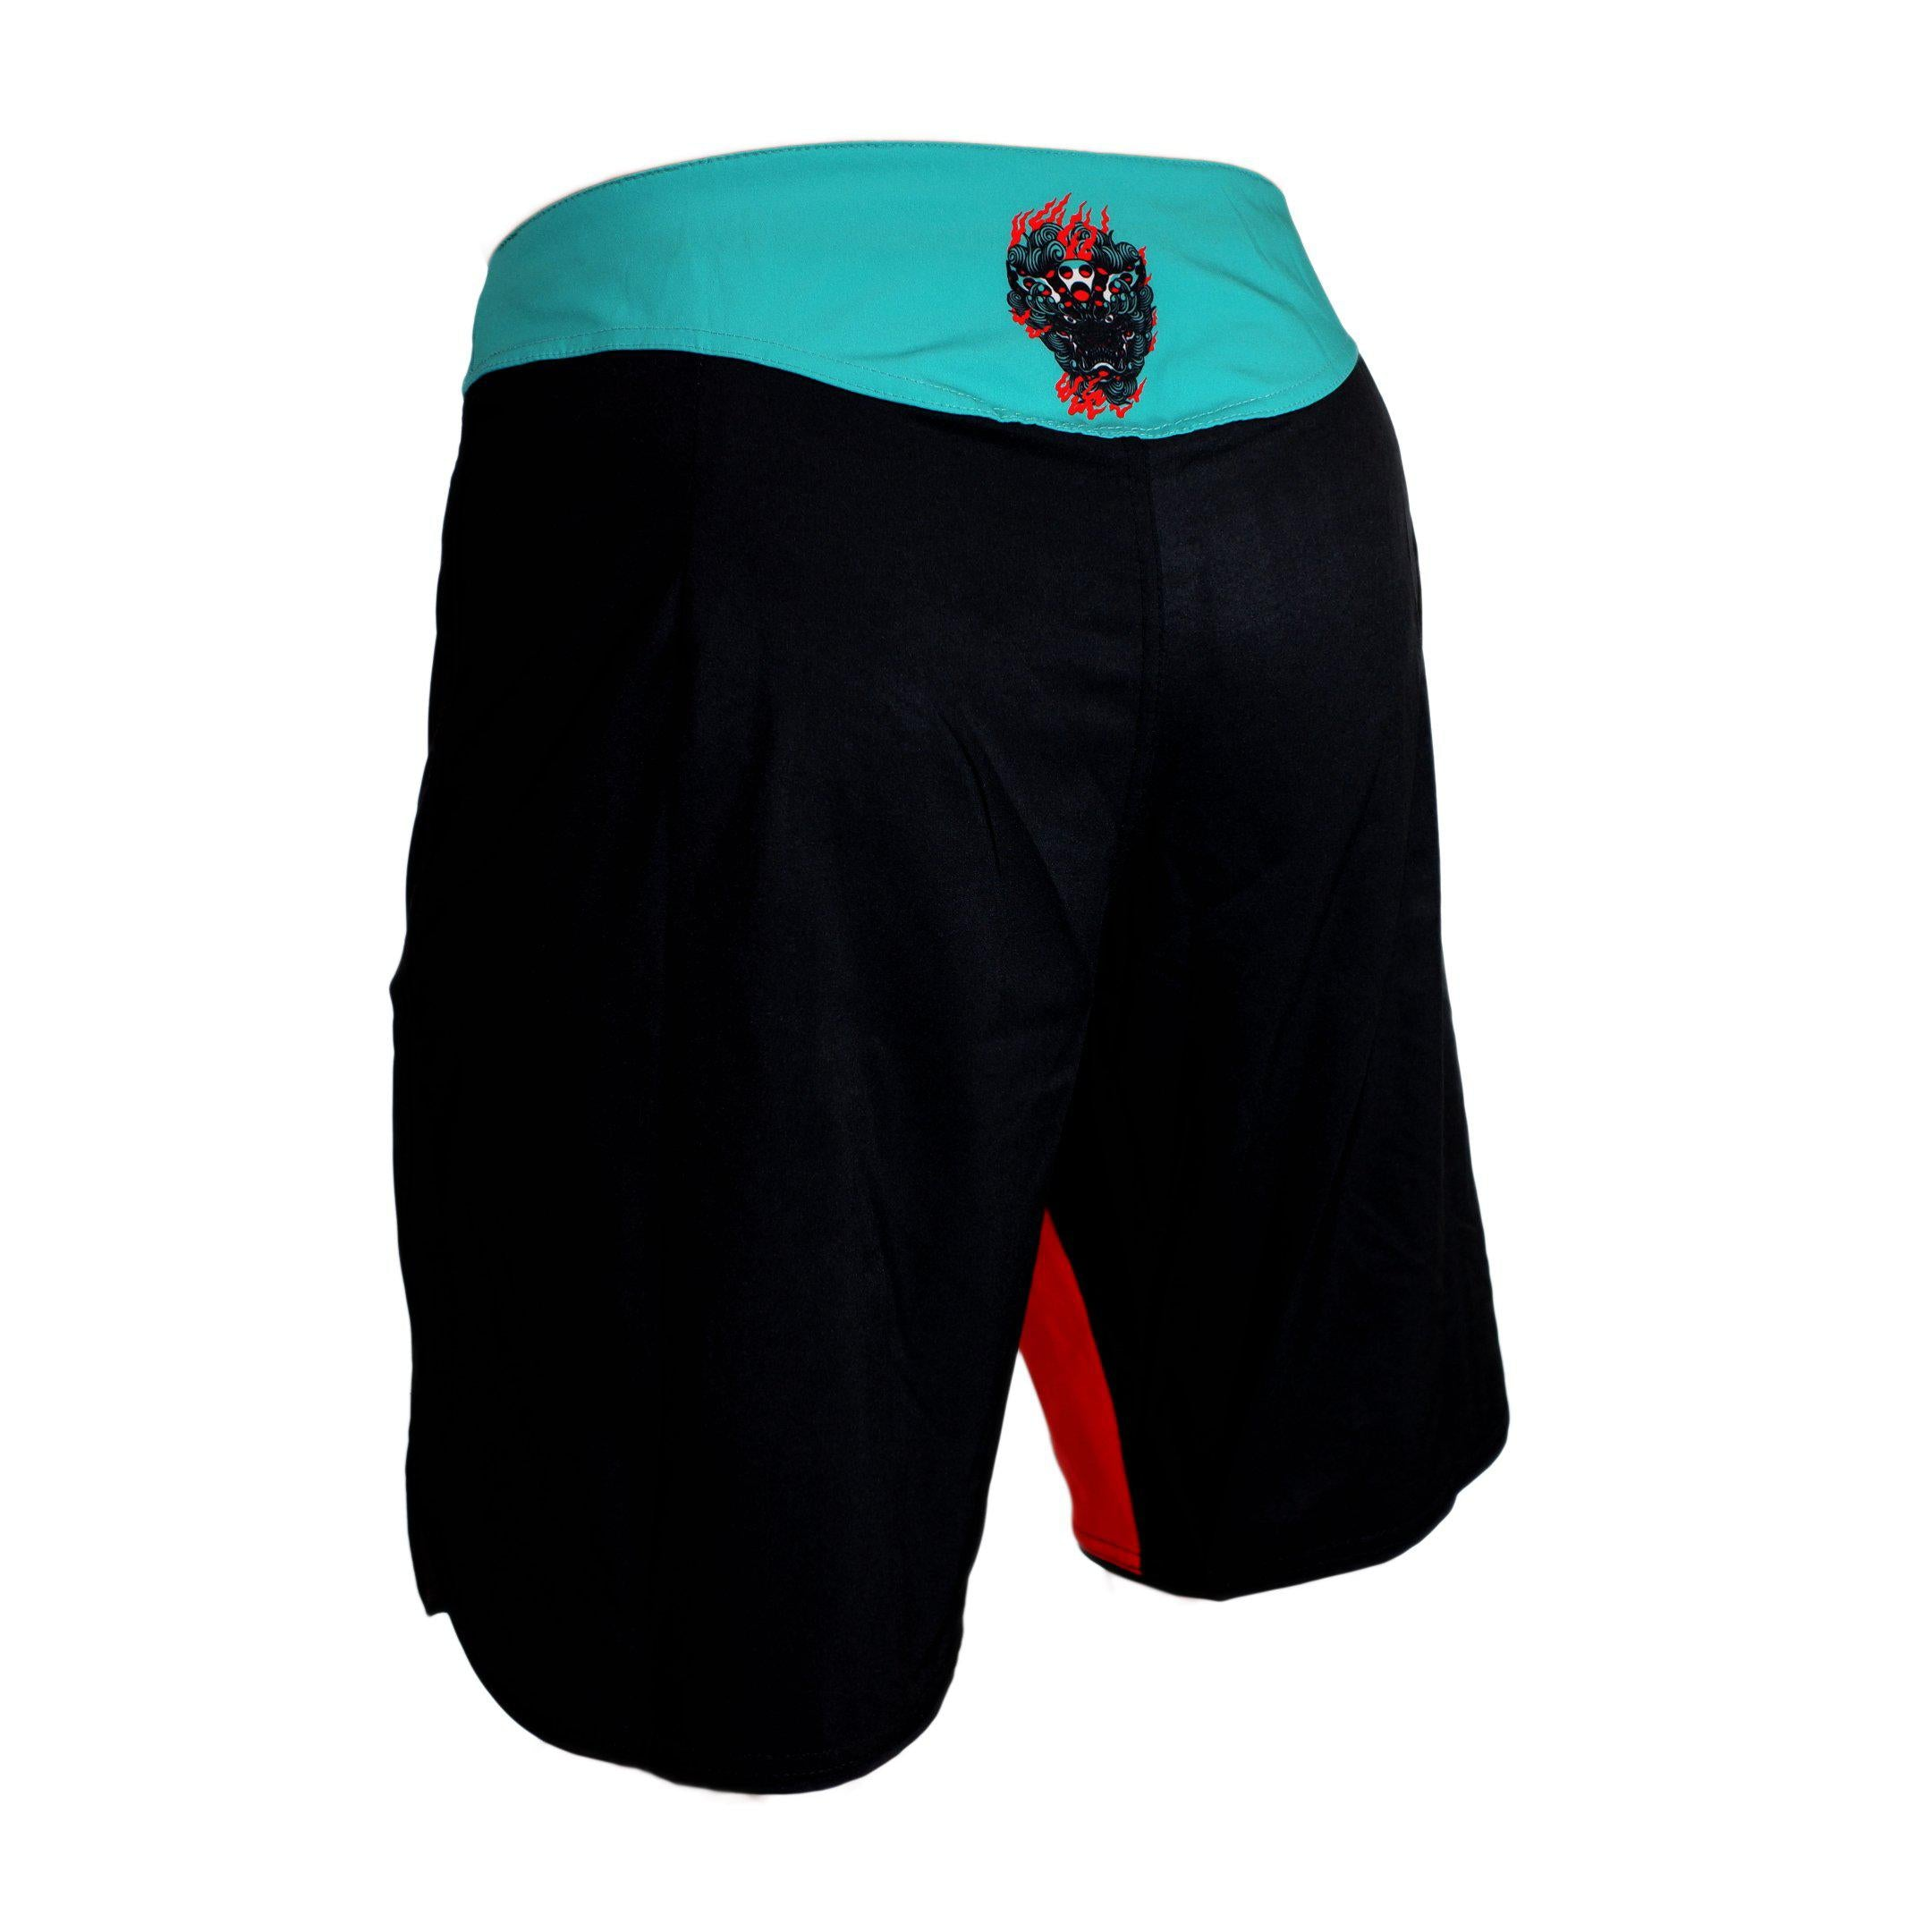 Komainu Grappling Shorts - Zenko Fightwear